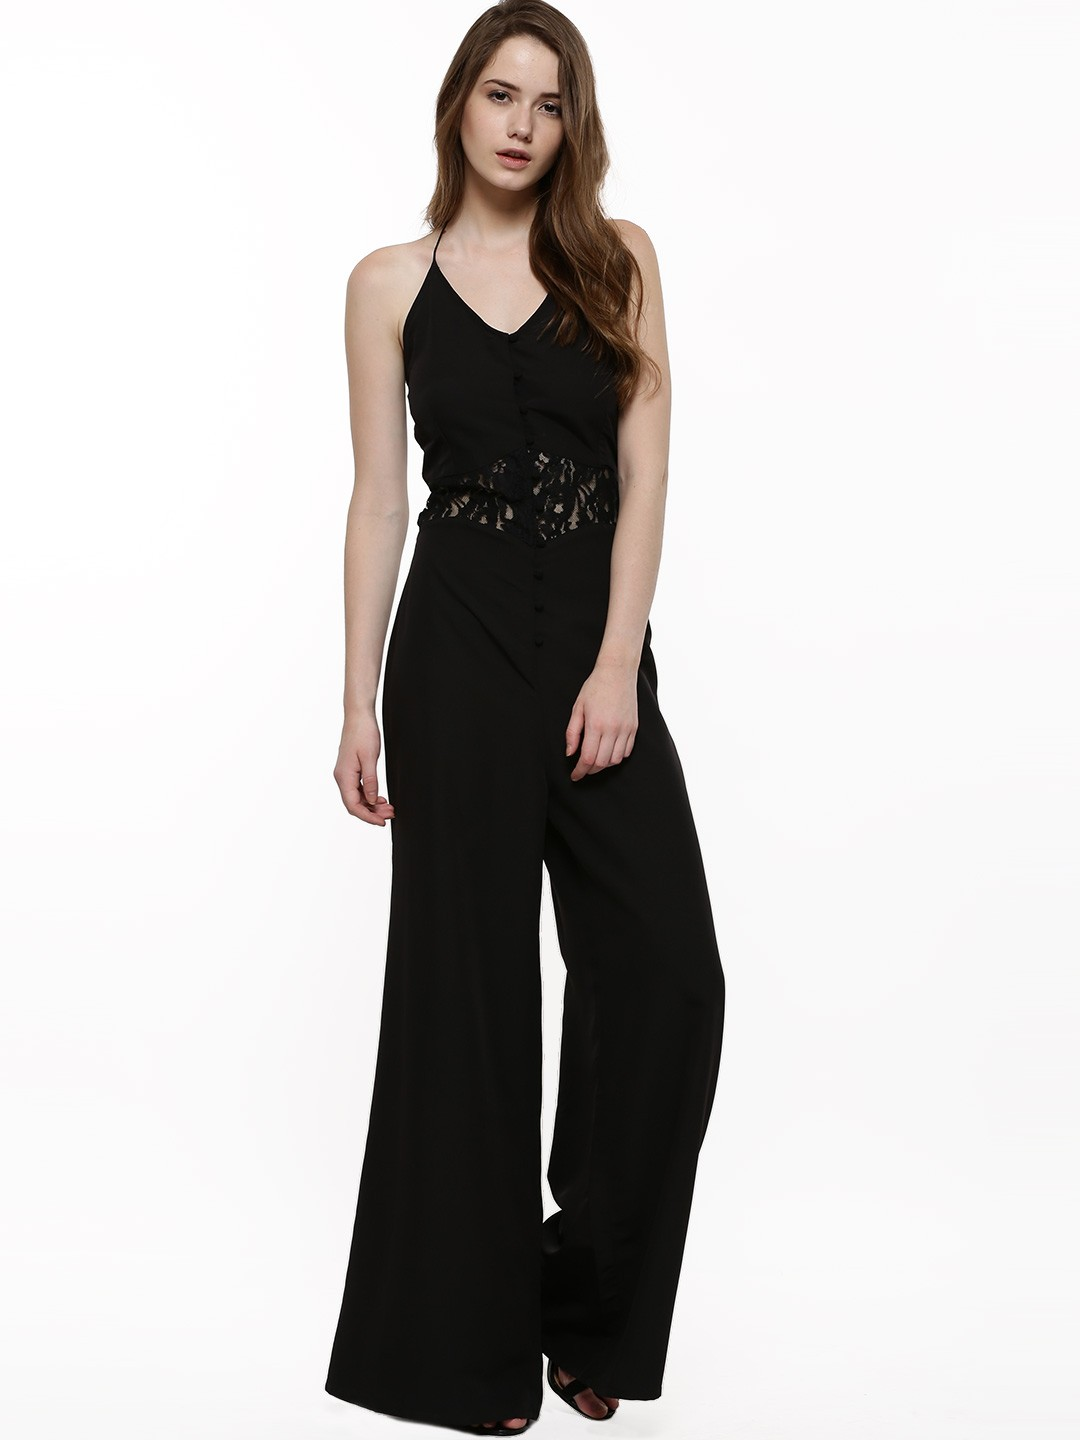 Original Monochromatic Jumpsuits Go Excellent With The Silhouette Of Curvy Women Also, Go For Rich  Relationship With Music And Cant Think Of A Life Without Family, Friends And Online Shopping When Not Working On Projects Or Experimenting